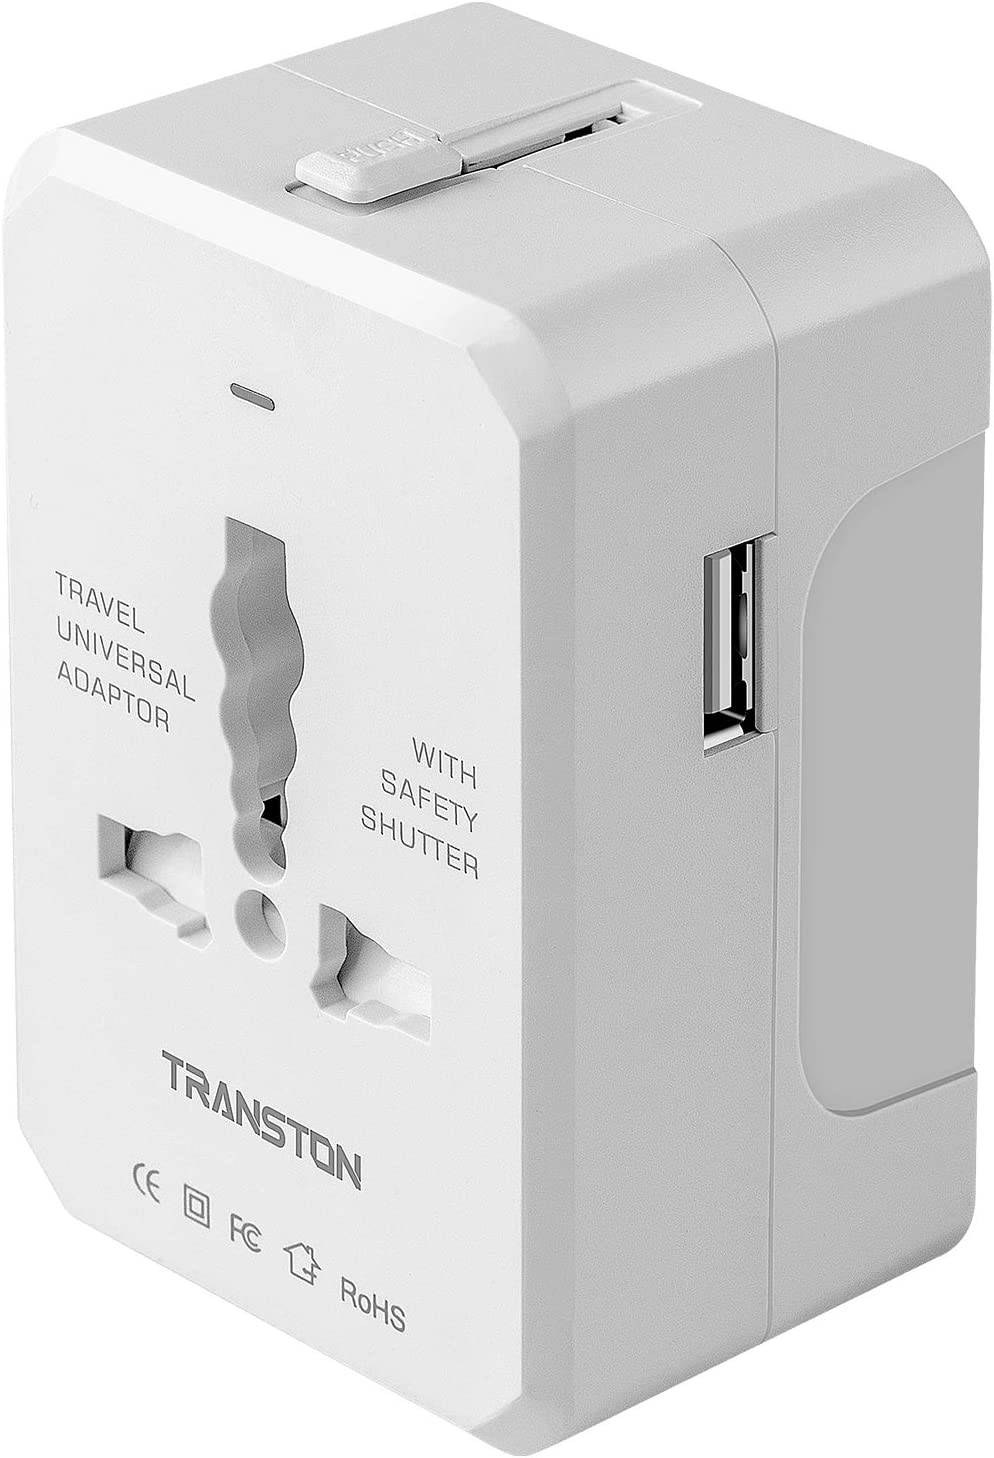 Travel Adapter, Worldwide All in One Universal Travel Plug Adapter AC Power Plug International Wall Charger with USB Charging Ports for USA EU UK AUS Cell Phone Laptop, White